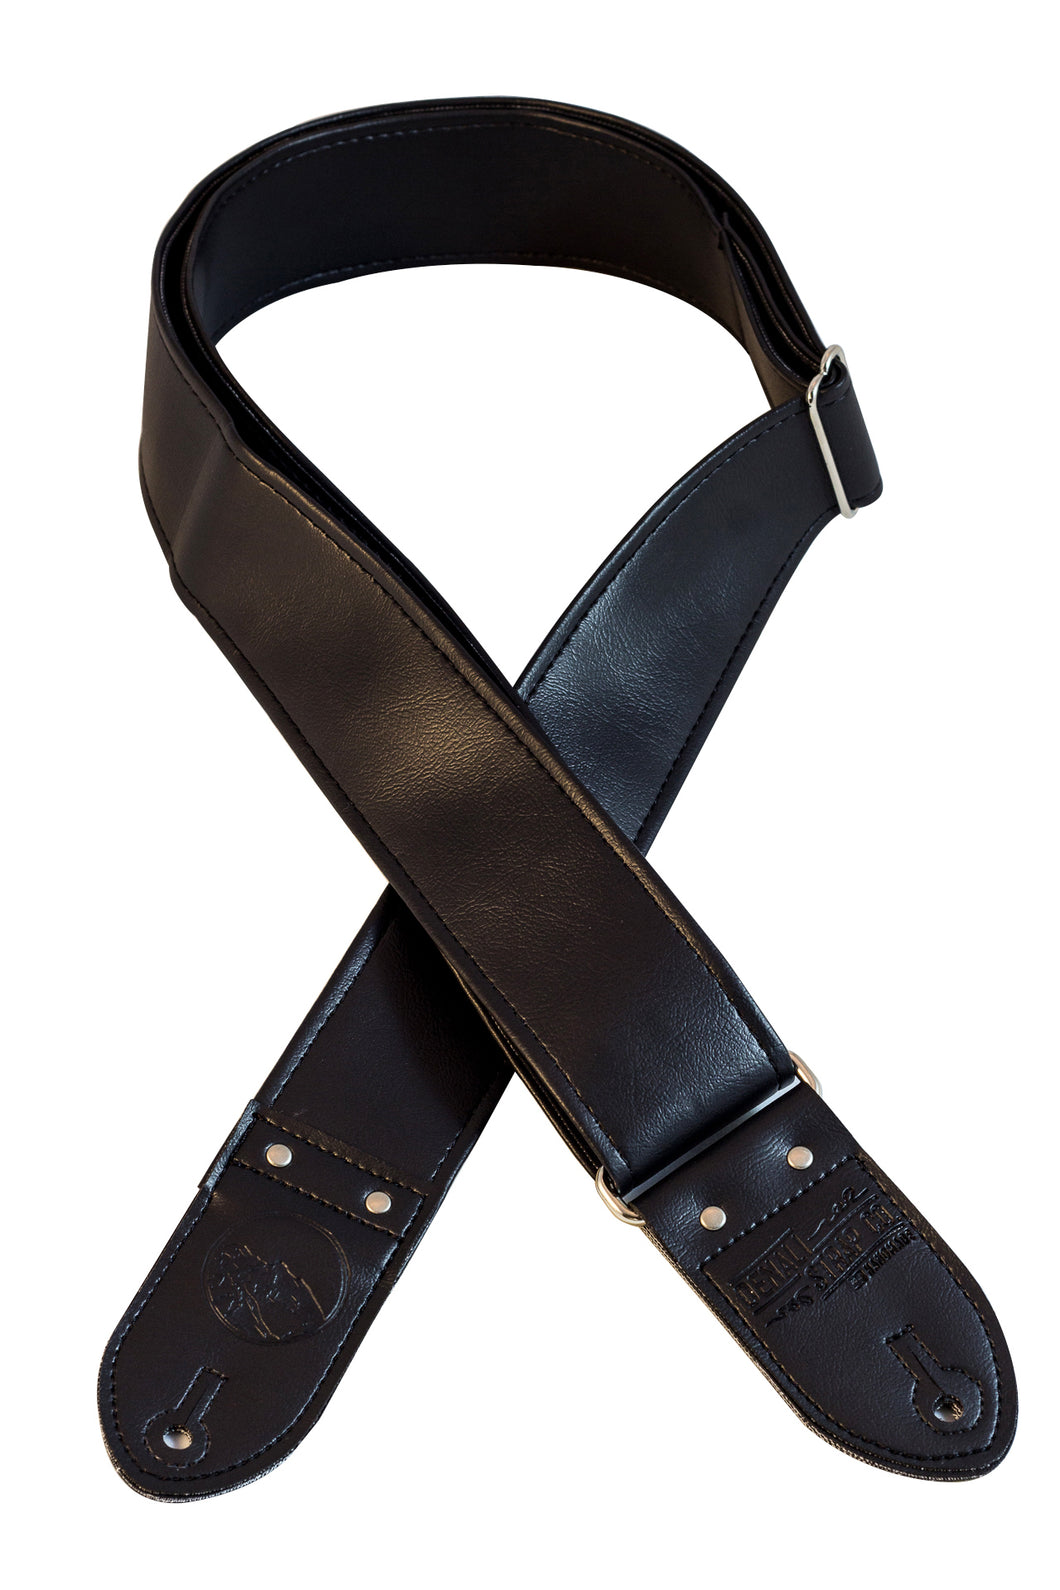 Classic All Black Guitar Strap